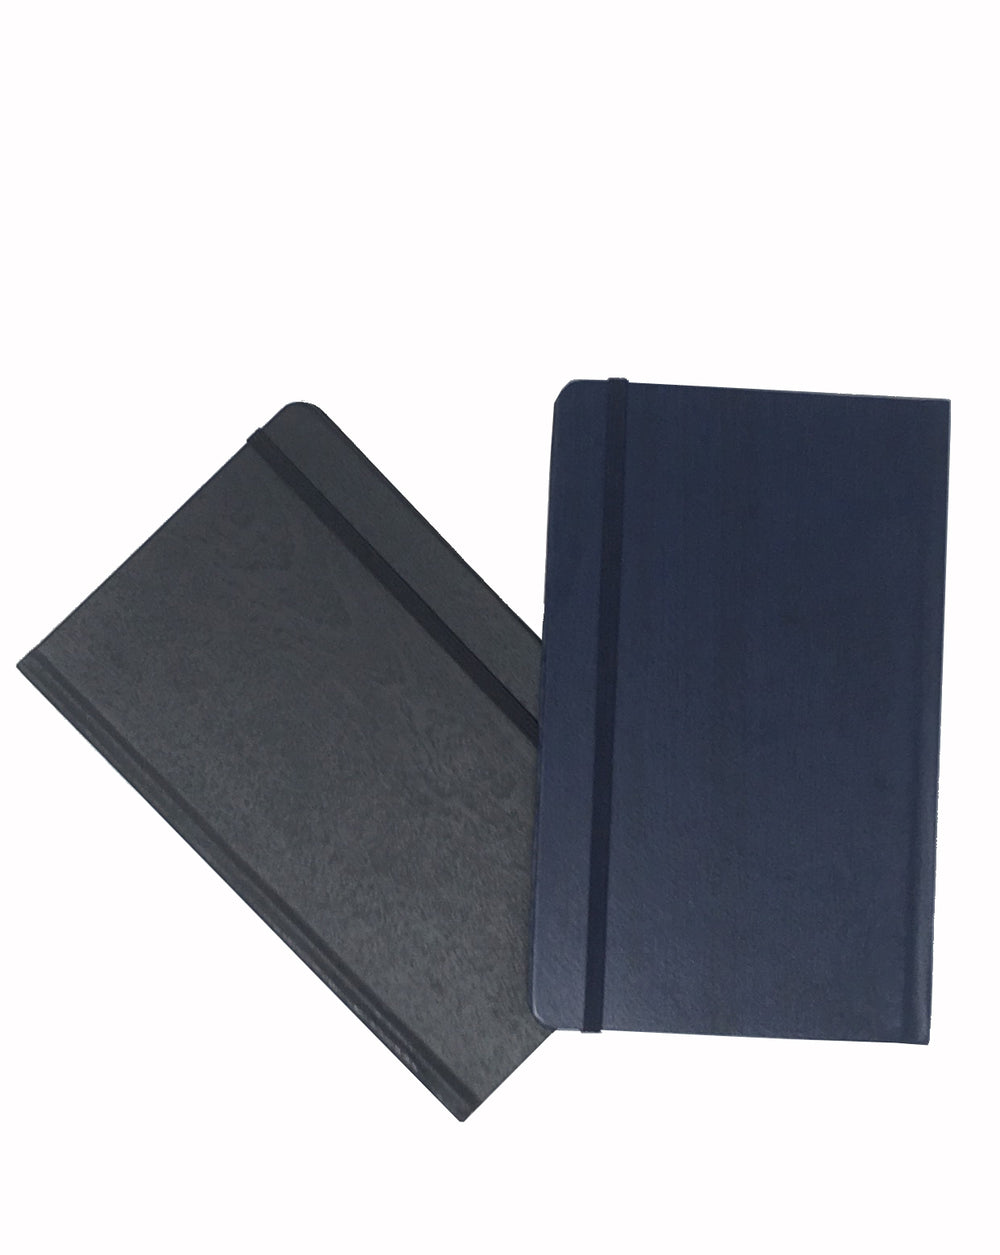 Wood Finish Hardcover Notebook With Elastic Band Closure And Bookmark